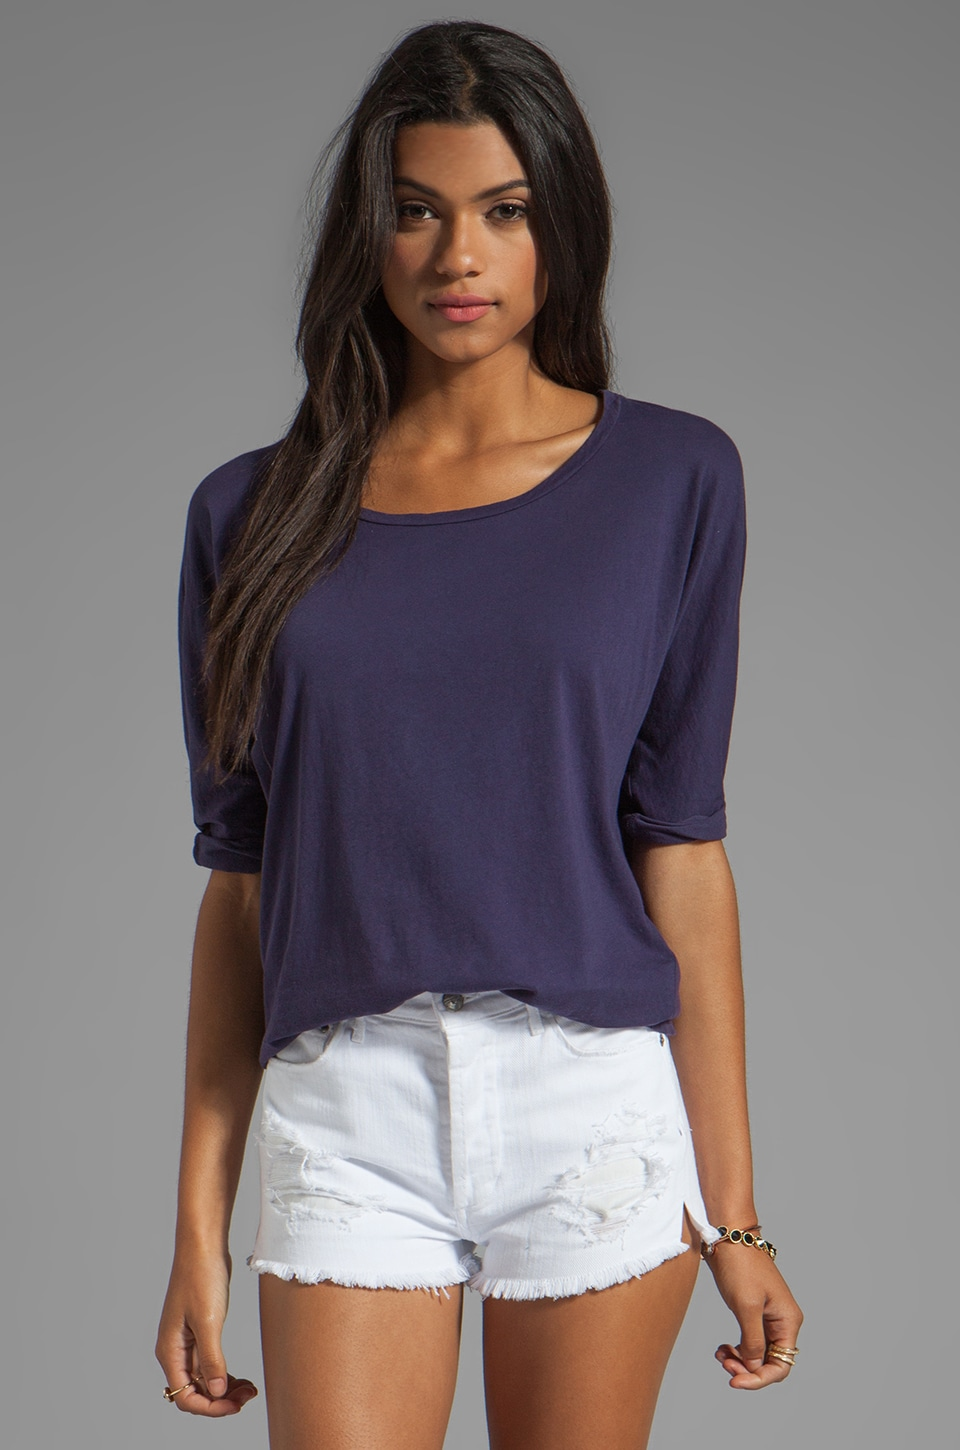 Velvet by Graham & Spencer Meryl Sheer Jersey Top in New Navy